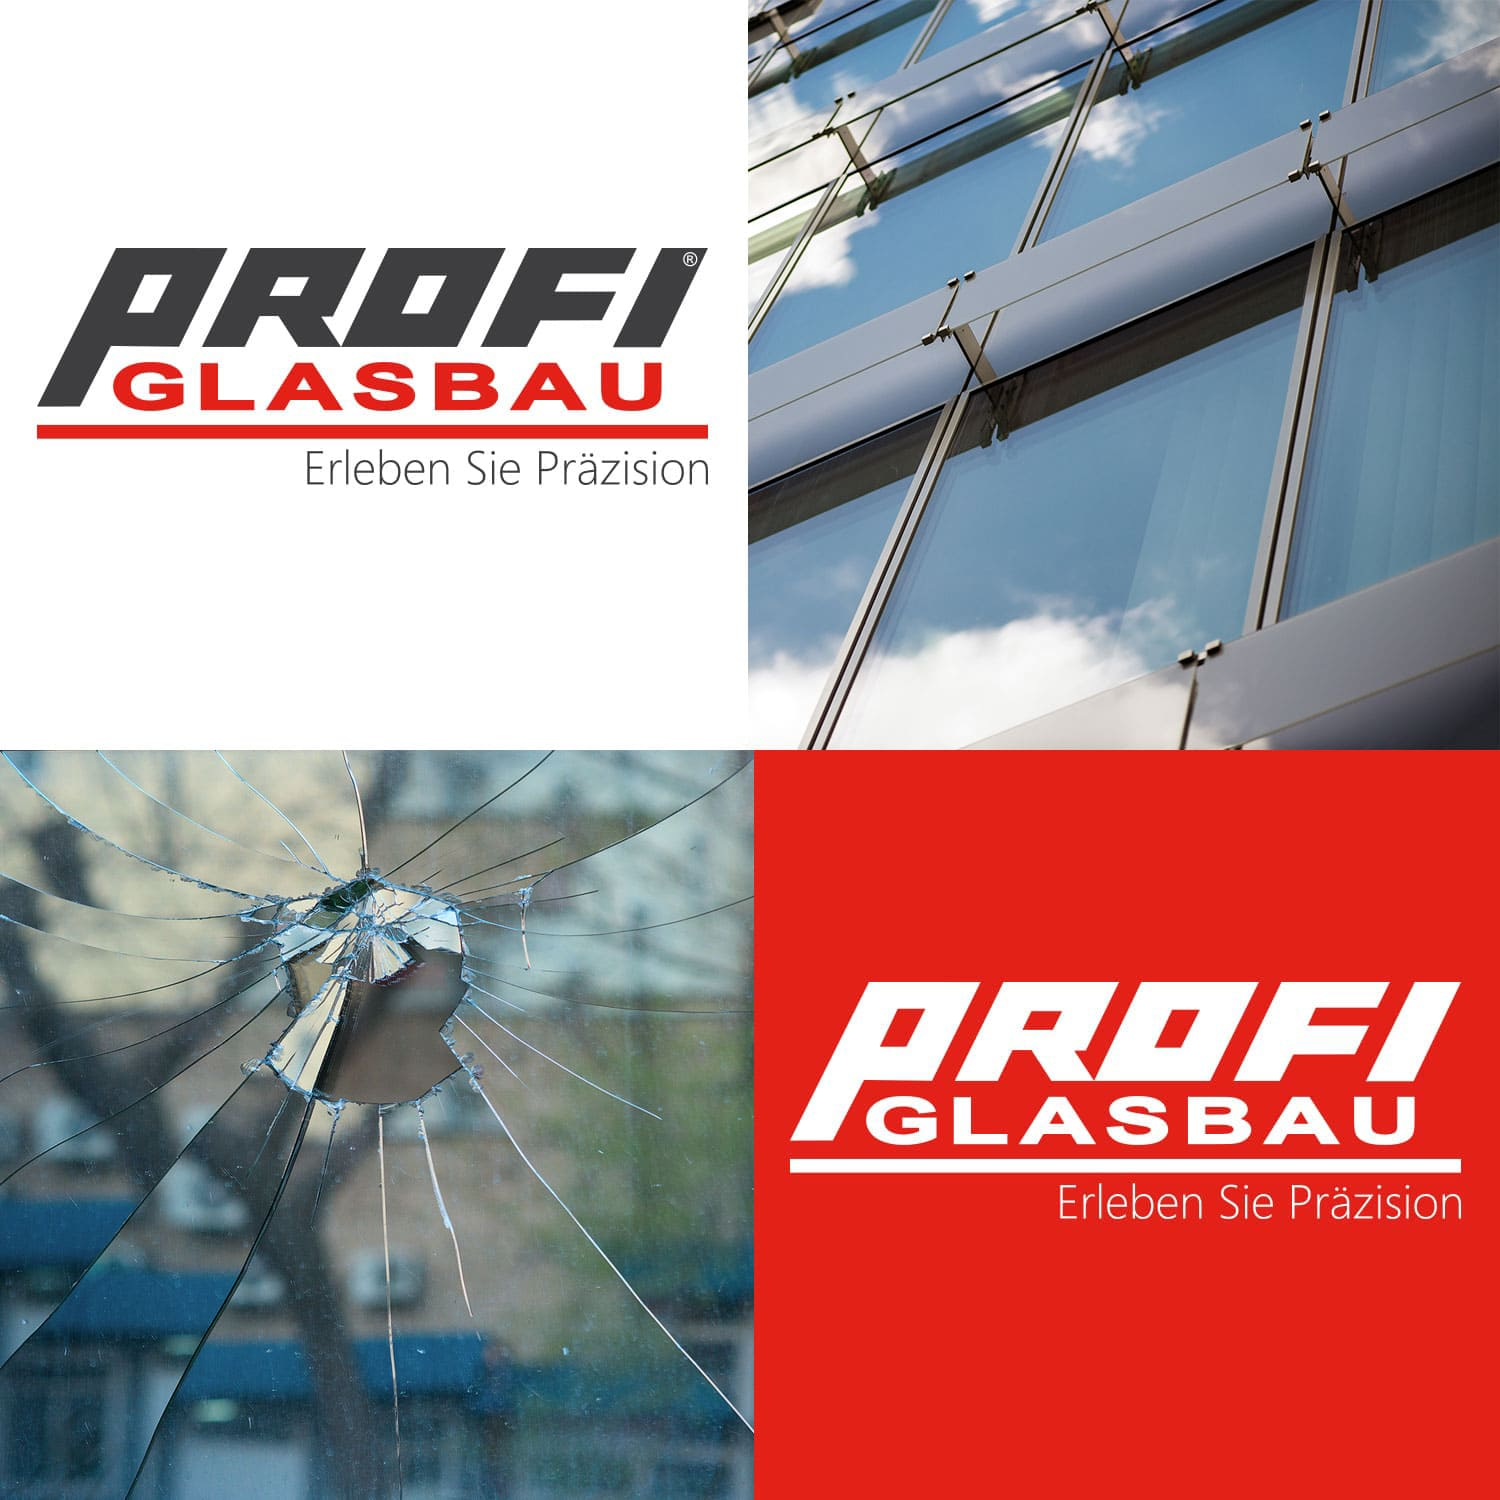 Logodesign Profi Glasbau